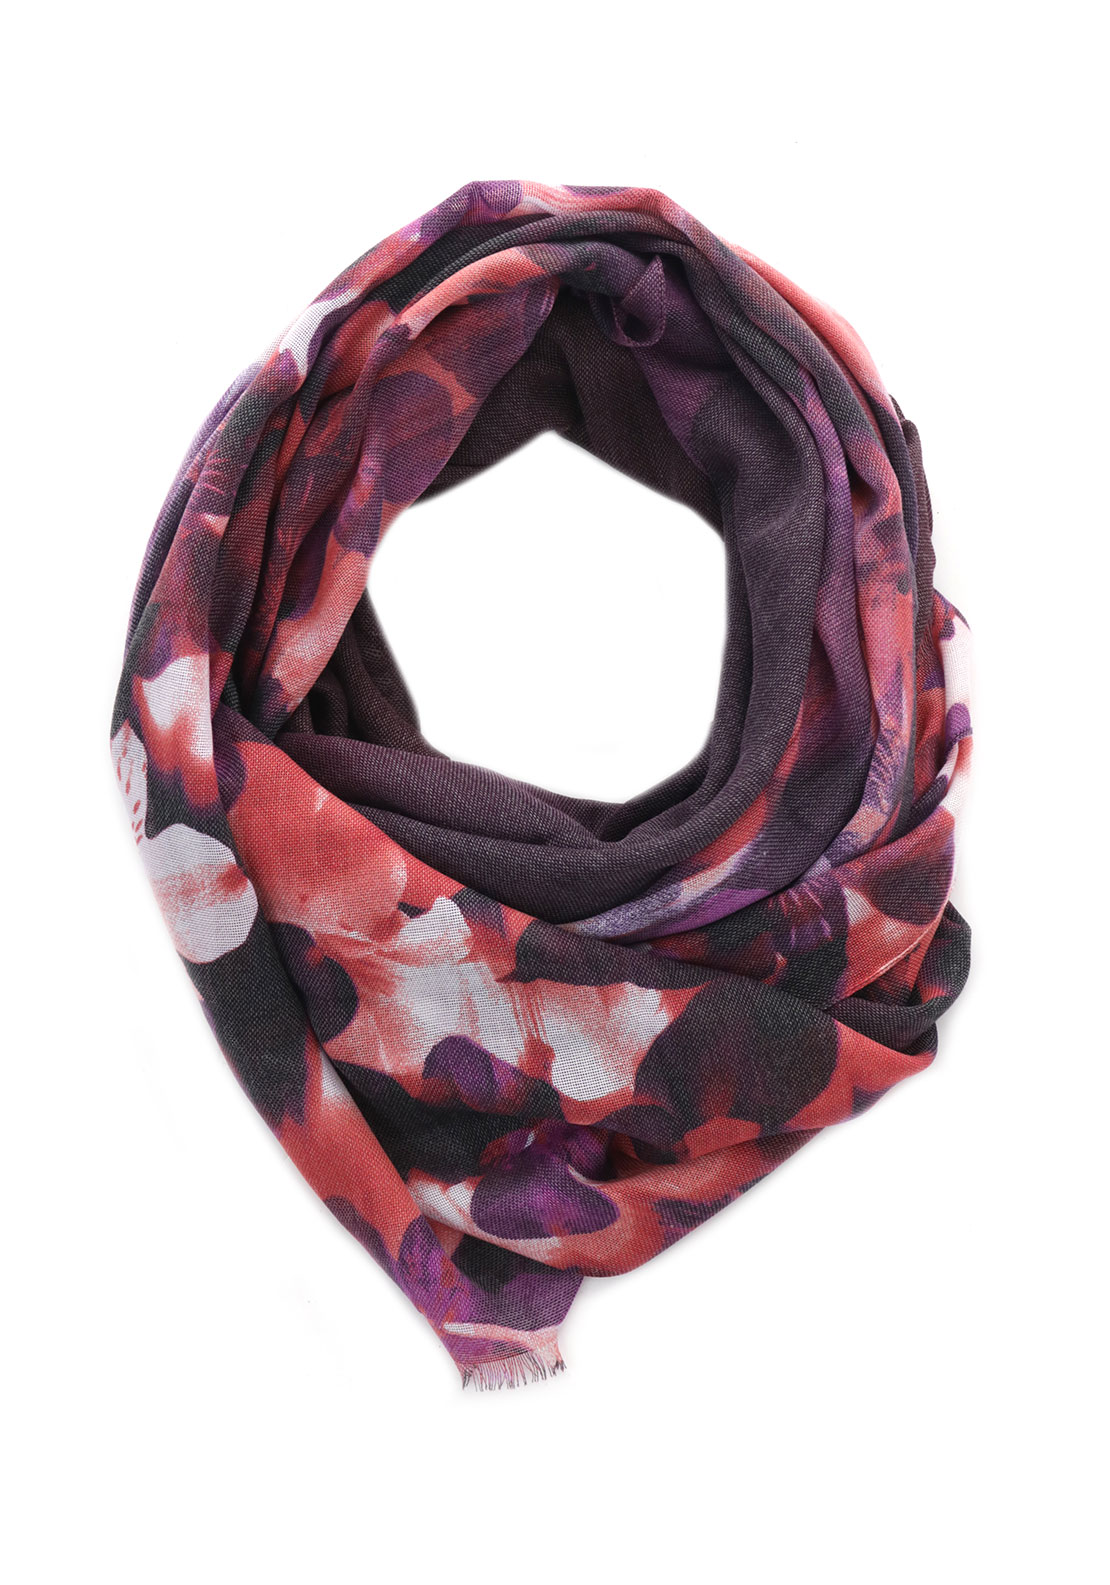 Guess Sauvage & Beauty Floral Scarf, Ruby Purple